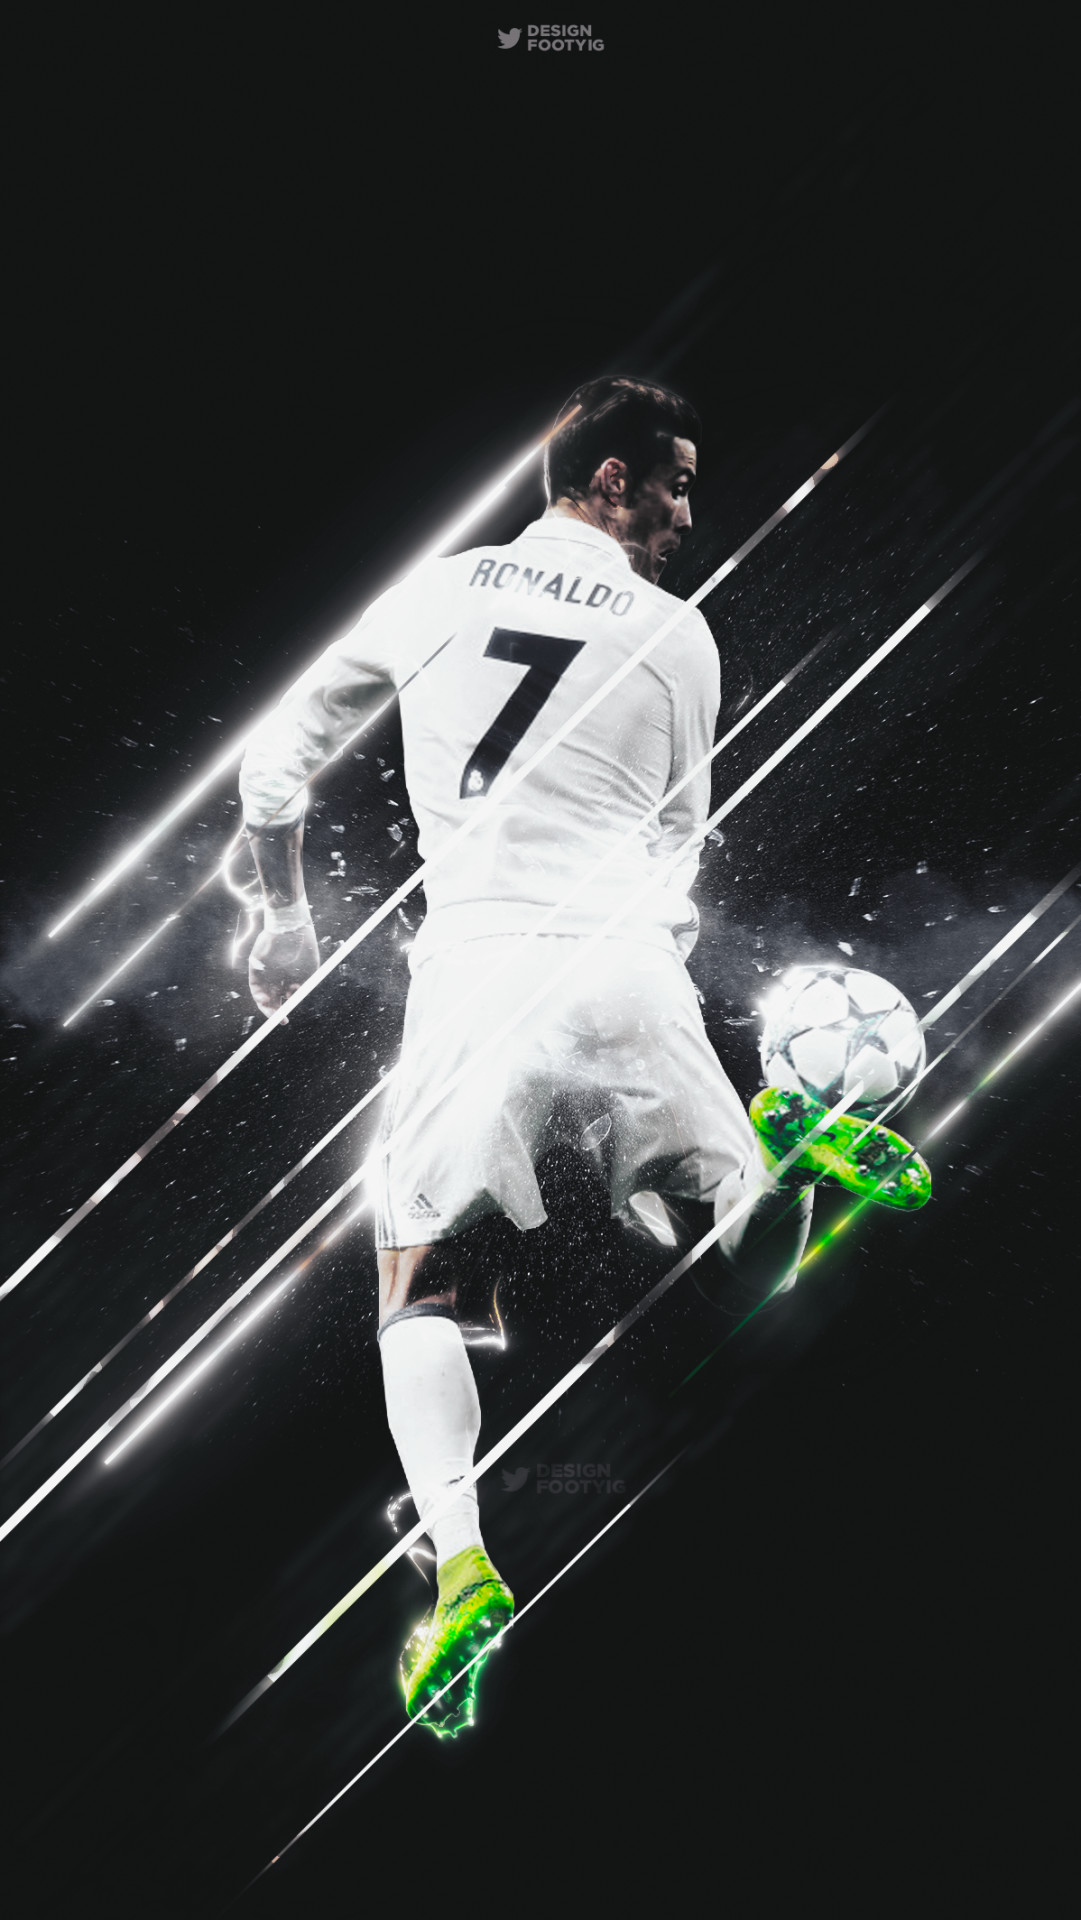 Real madrid hd wallpaper 2018 64 images 1920x1080 toni kroos real madrid napoli voltagebd Image collections